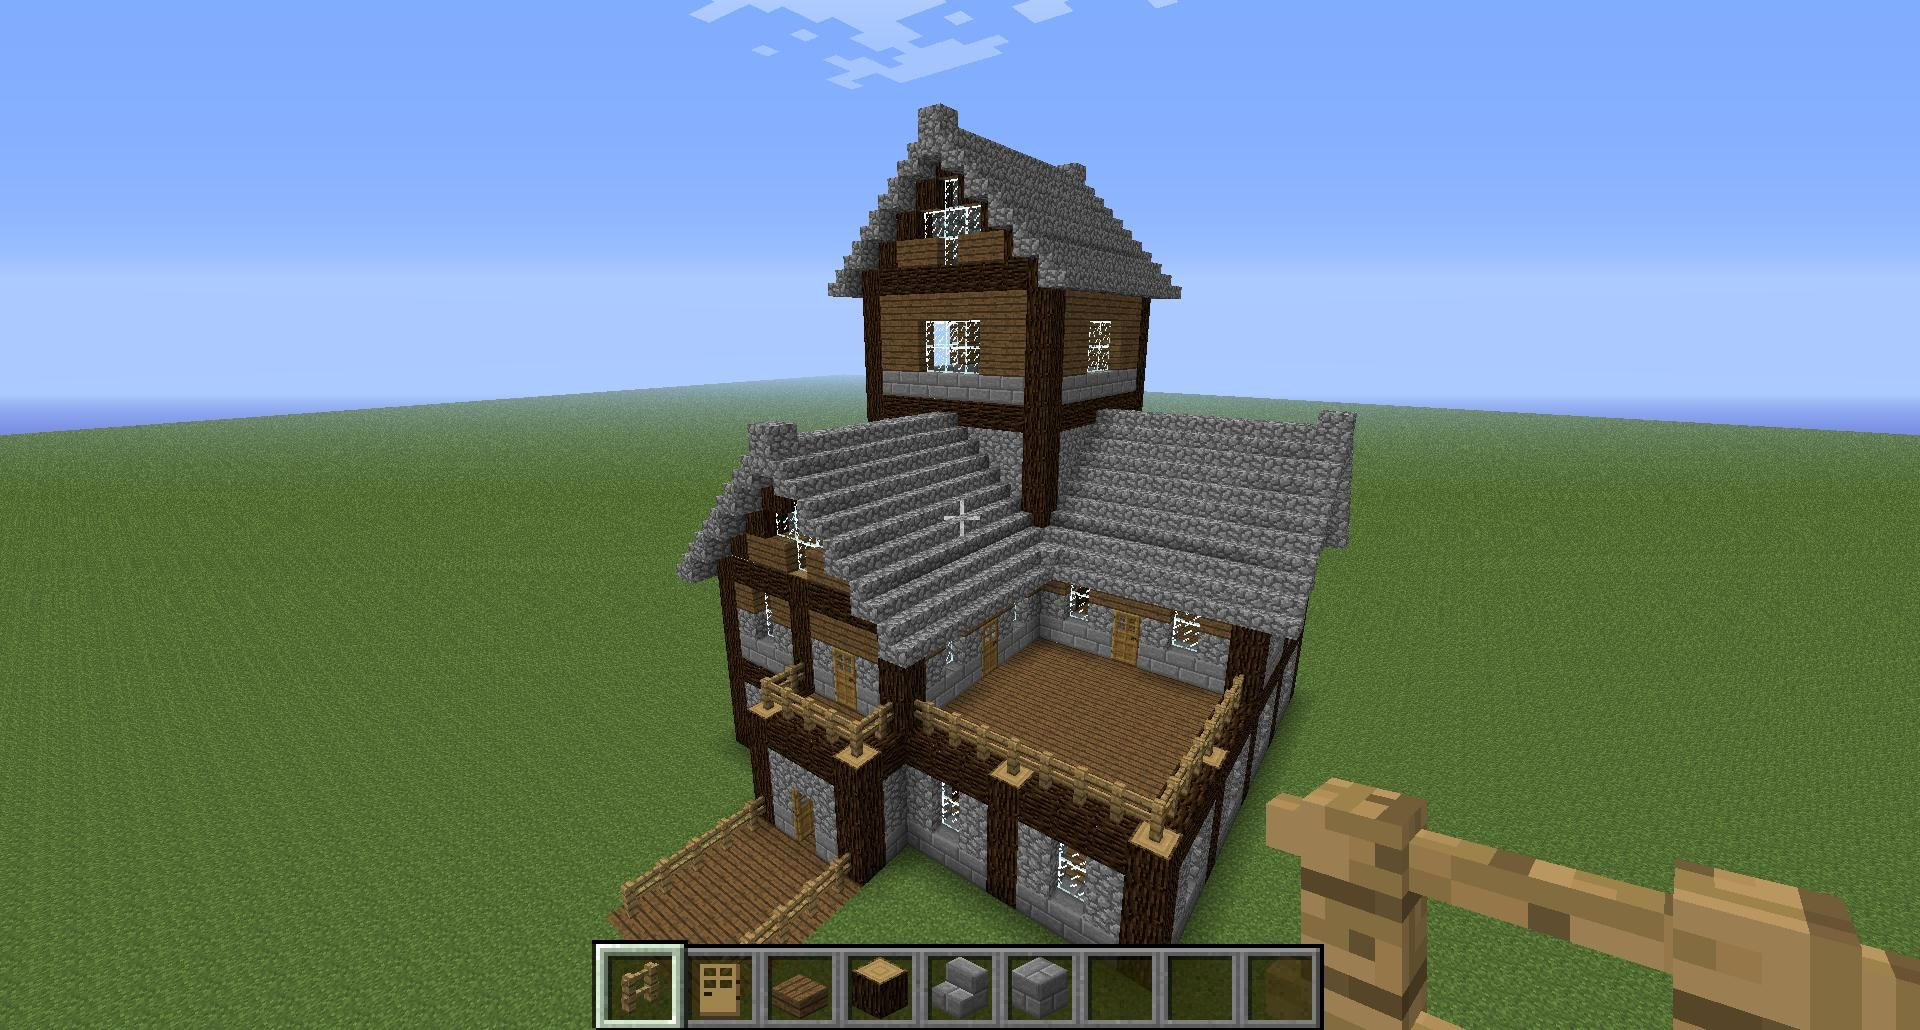 Beautiful medieval house tutorial creative mode minecraft beautiful medieval house tutorial creative mode minecraft discussion minecraft forum minecraft malvernweather Gallery